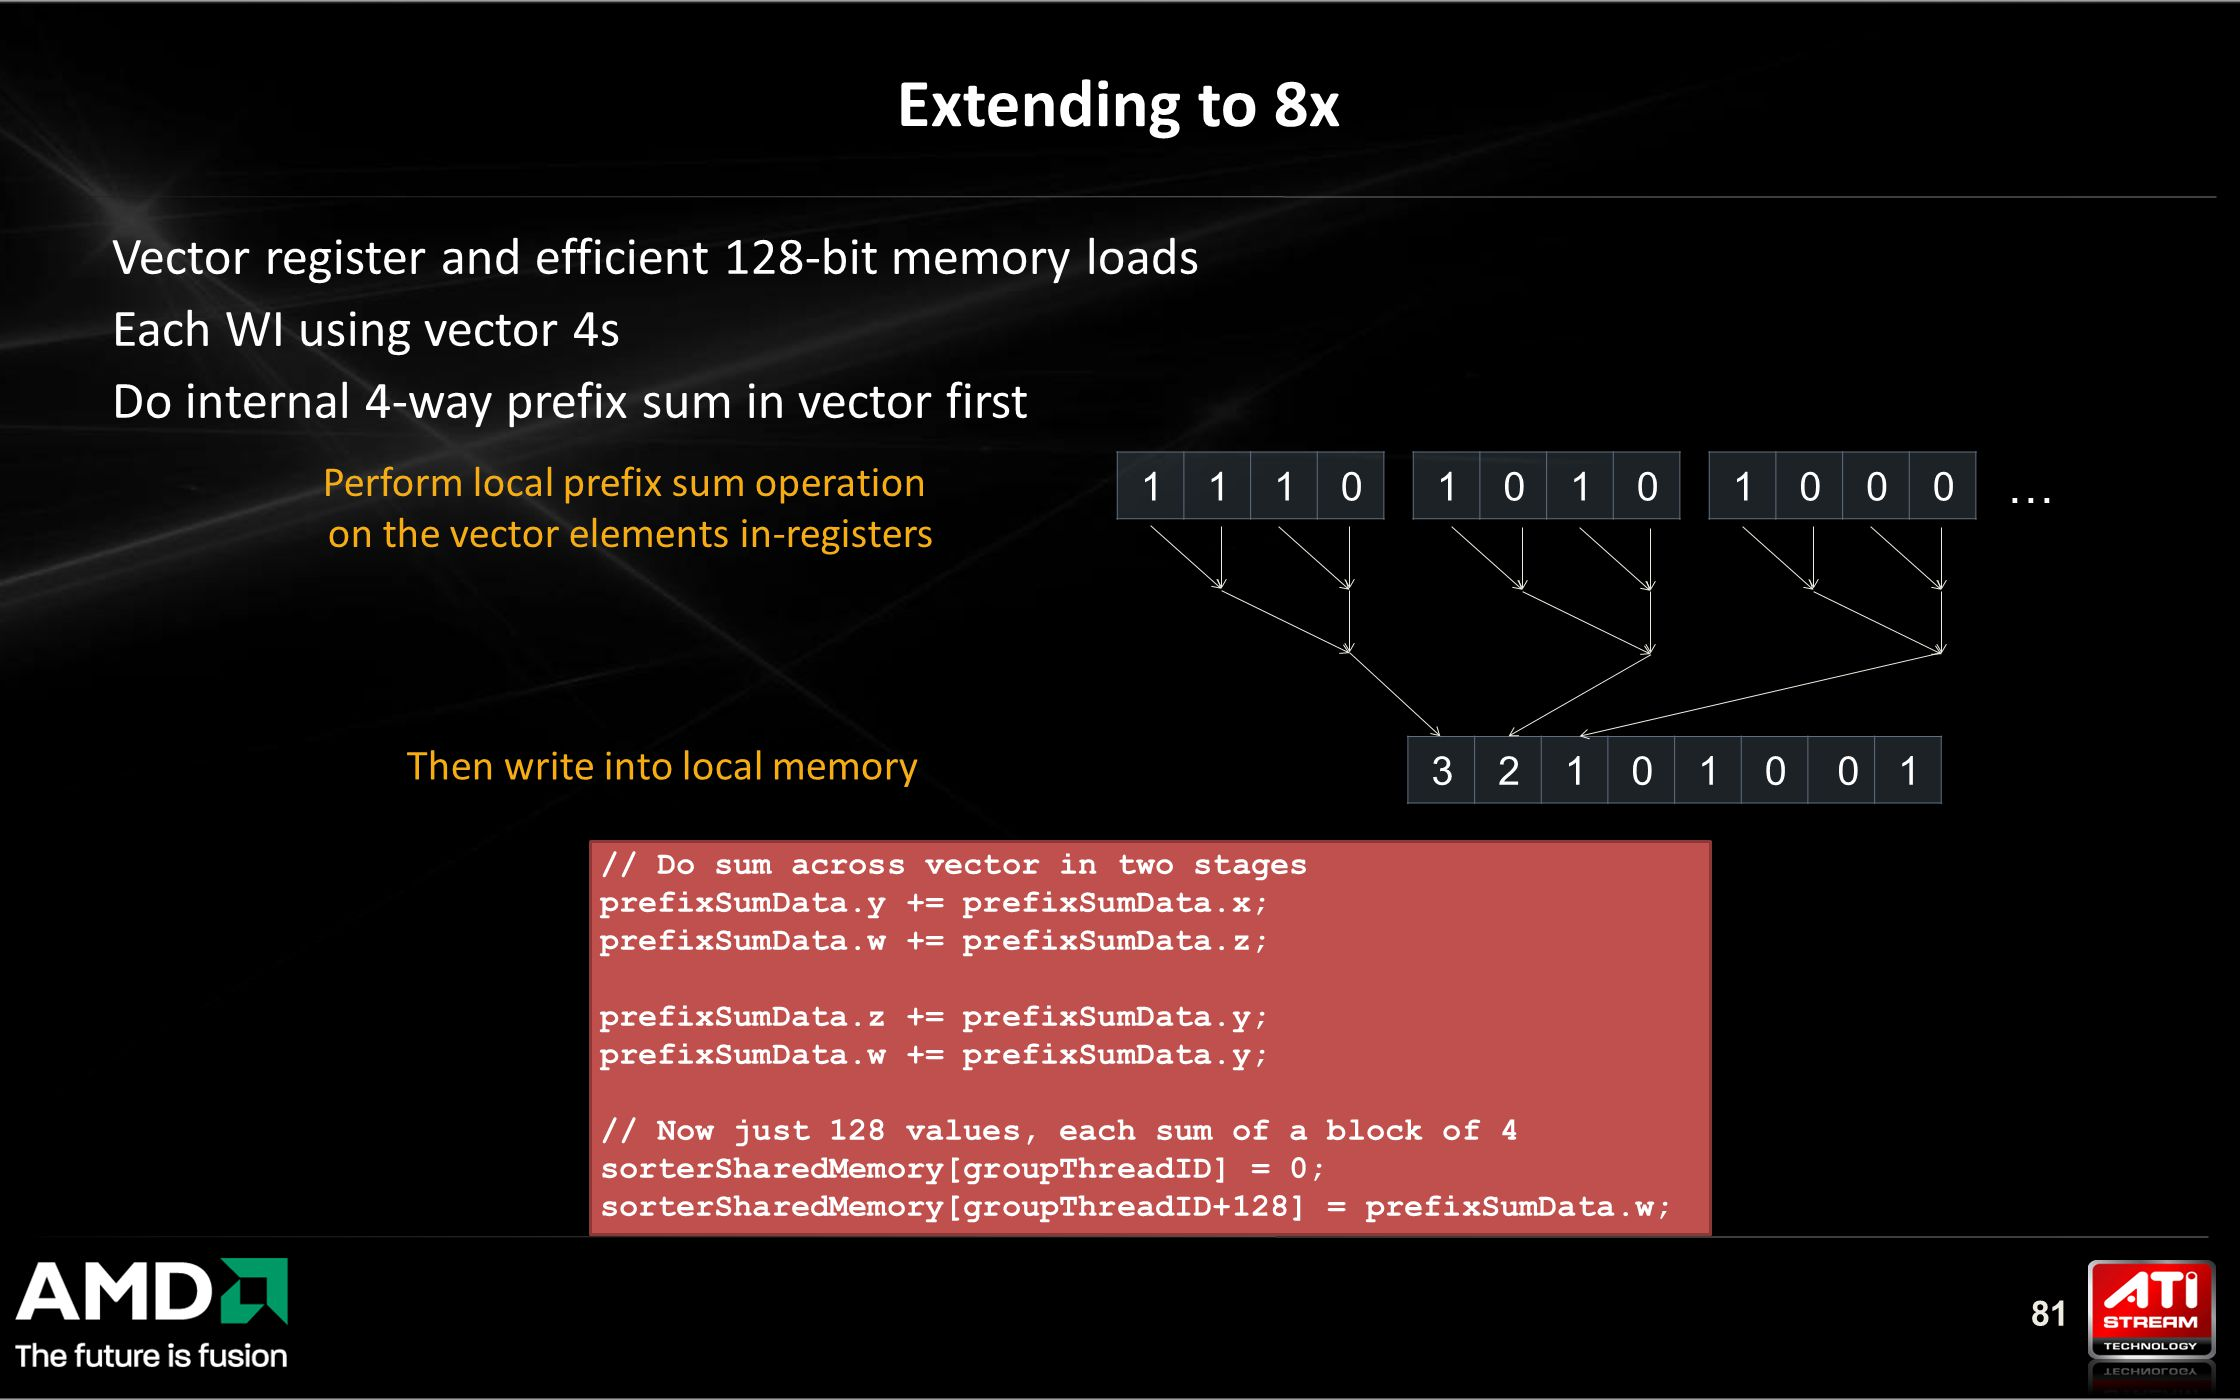 81 Extending to 8x Vector register and efficient 128-bit memory loads Each WI using vector 4s Do internal 4-way prefix sum in vector first Then write into local memory 321010 01 111010101000 … Perform local prefix sum operation on the vector elements in-registers // Do sum across vector in two stages prefixSumData.y += prefixSumData.x; prefixSumData.w += prefixSumData.z; prefixSumData.z += prefixSumData.y; prefixSumData.w += prefixSumData.y; // Now just 128 values, each sum of a block of 4 sorterSharedMemory[groupThreadID] = 0; sorterSharedMemory[groupThreadID+128] = prefixSumData.w;